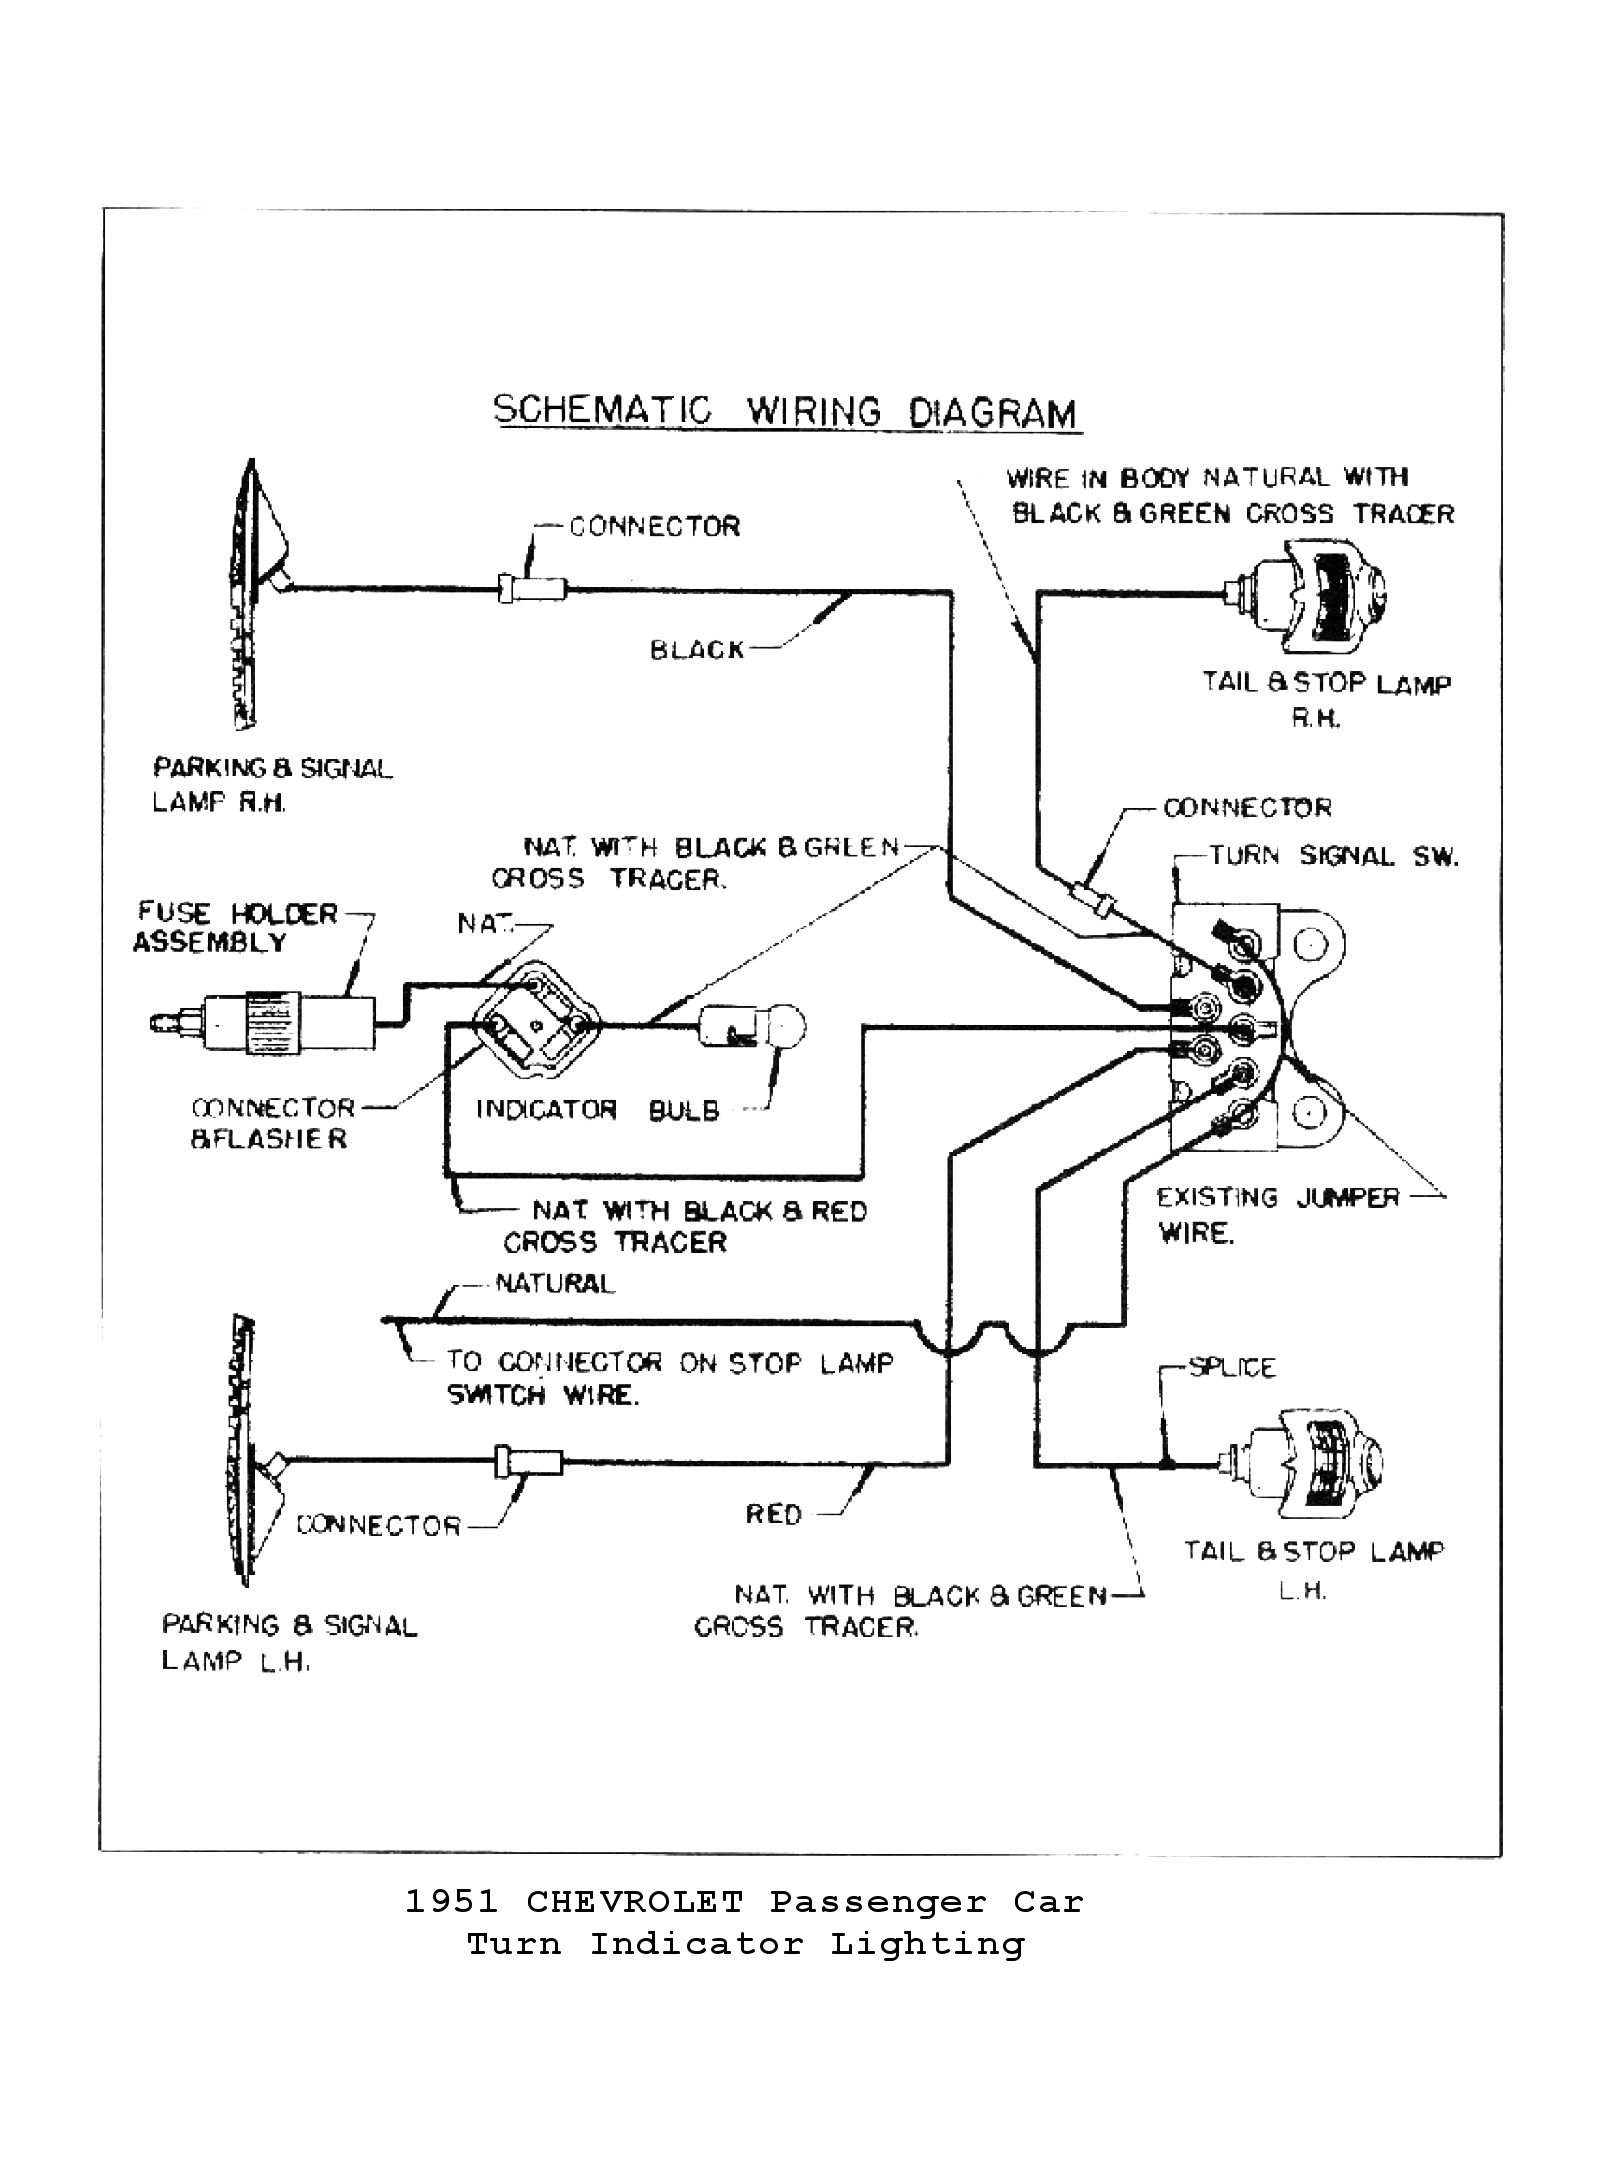 Chevy Wiring diagrams on 67 chevelle horn diagram, 1970 chevelle ss fender emblem location, 1970 chevelle fuel gauge wiring, 1970 chevelle carburetor, 1970 chevelle wiring harness, 1967 chevelle horn diagram, 1970 chevelle air conditioning, 1970 chevelle neutral safety switch, 1970 chevelle air cleaner, chevelle ac diagram, 1970 chevelle wiring blueprints, 1970 chevelle oil sending unit, 1970 chevelle alternator, 1970 chevelle crankshaft, 1970 chevelle transmission, 1970 chevelle lights, 1970 chevelle schematics, 1970 chevelle cowl induction relay location, 1970 chevelle clock, 1970 chevelle tires,